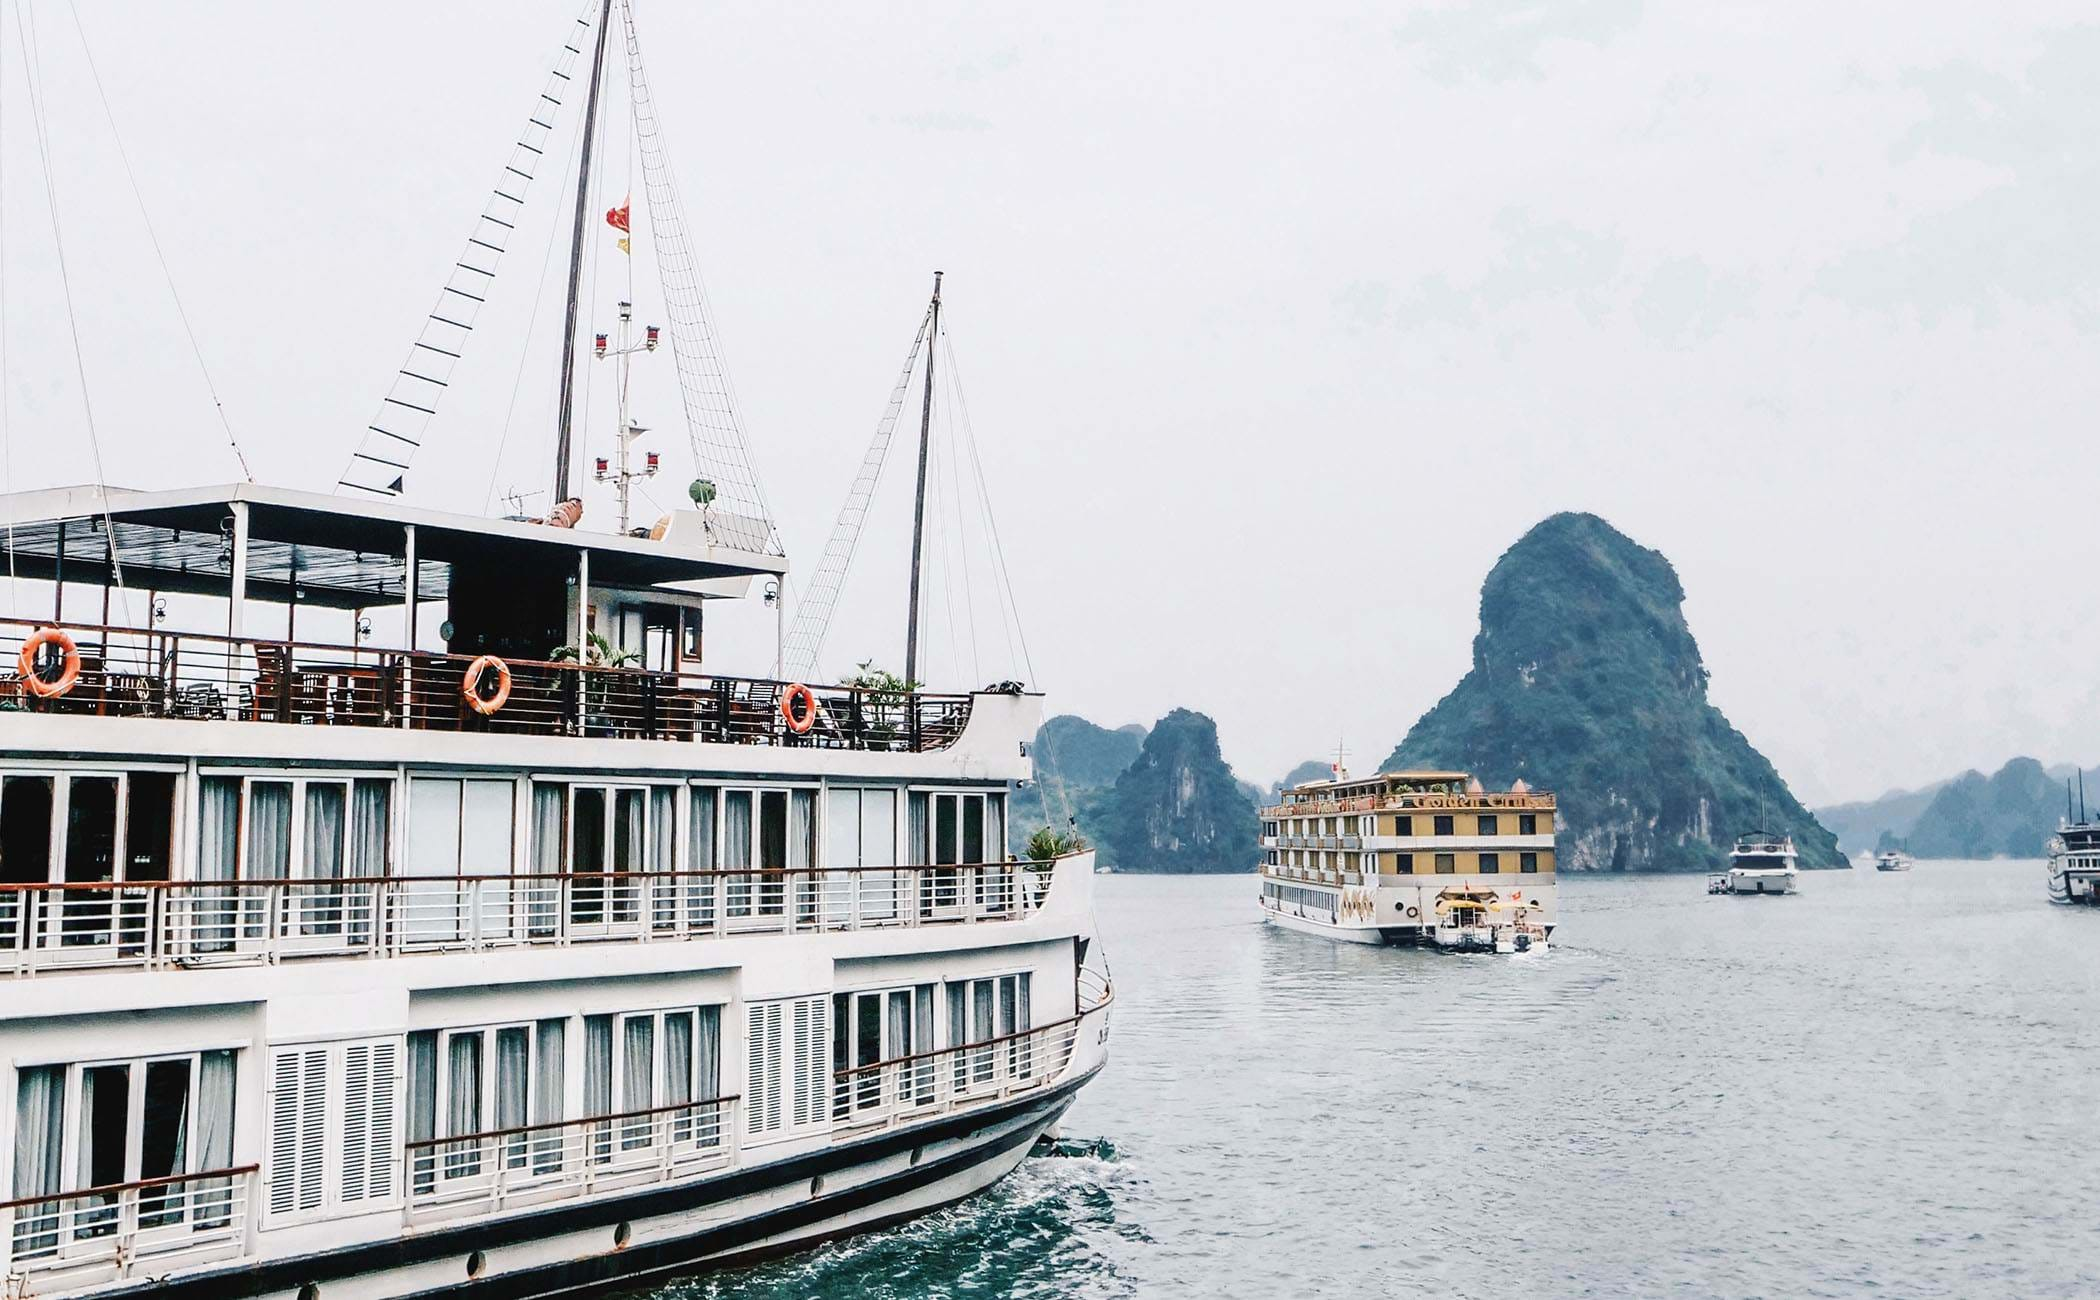 Ha long bay - KILROY